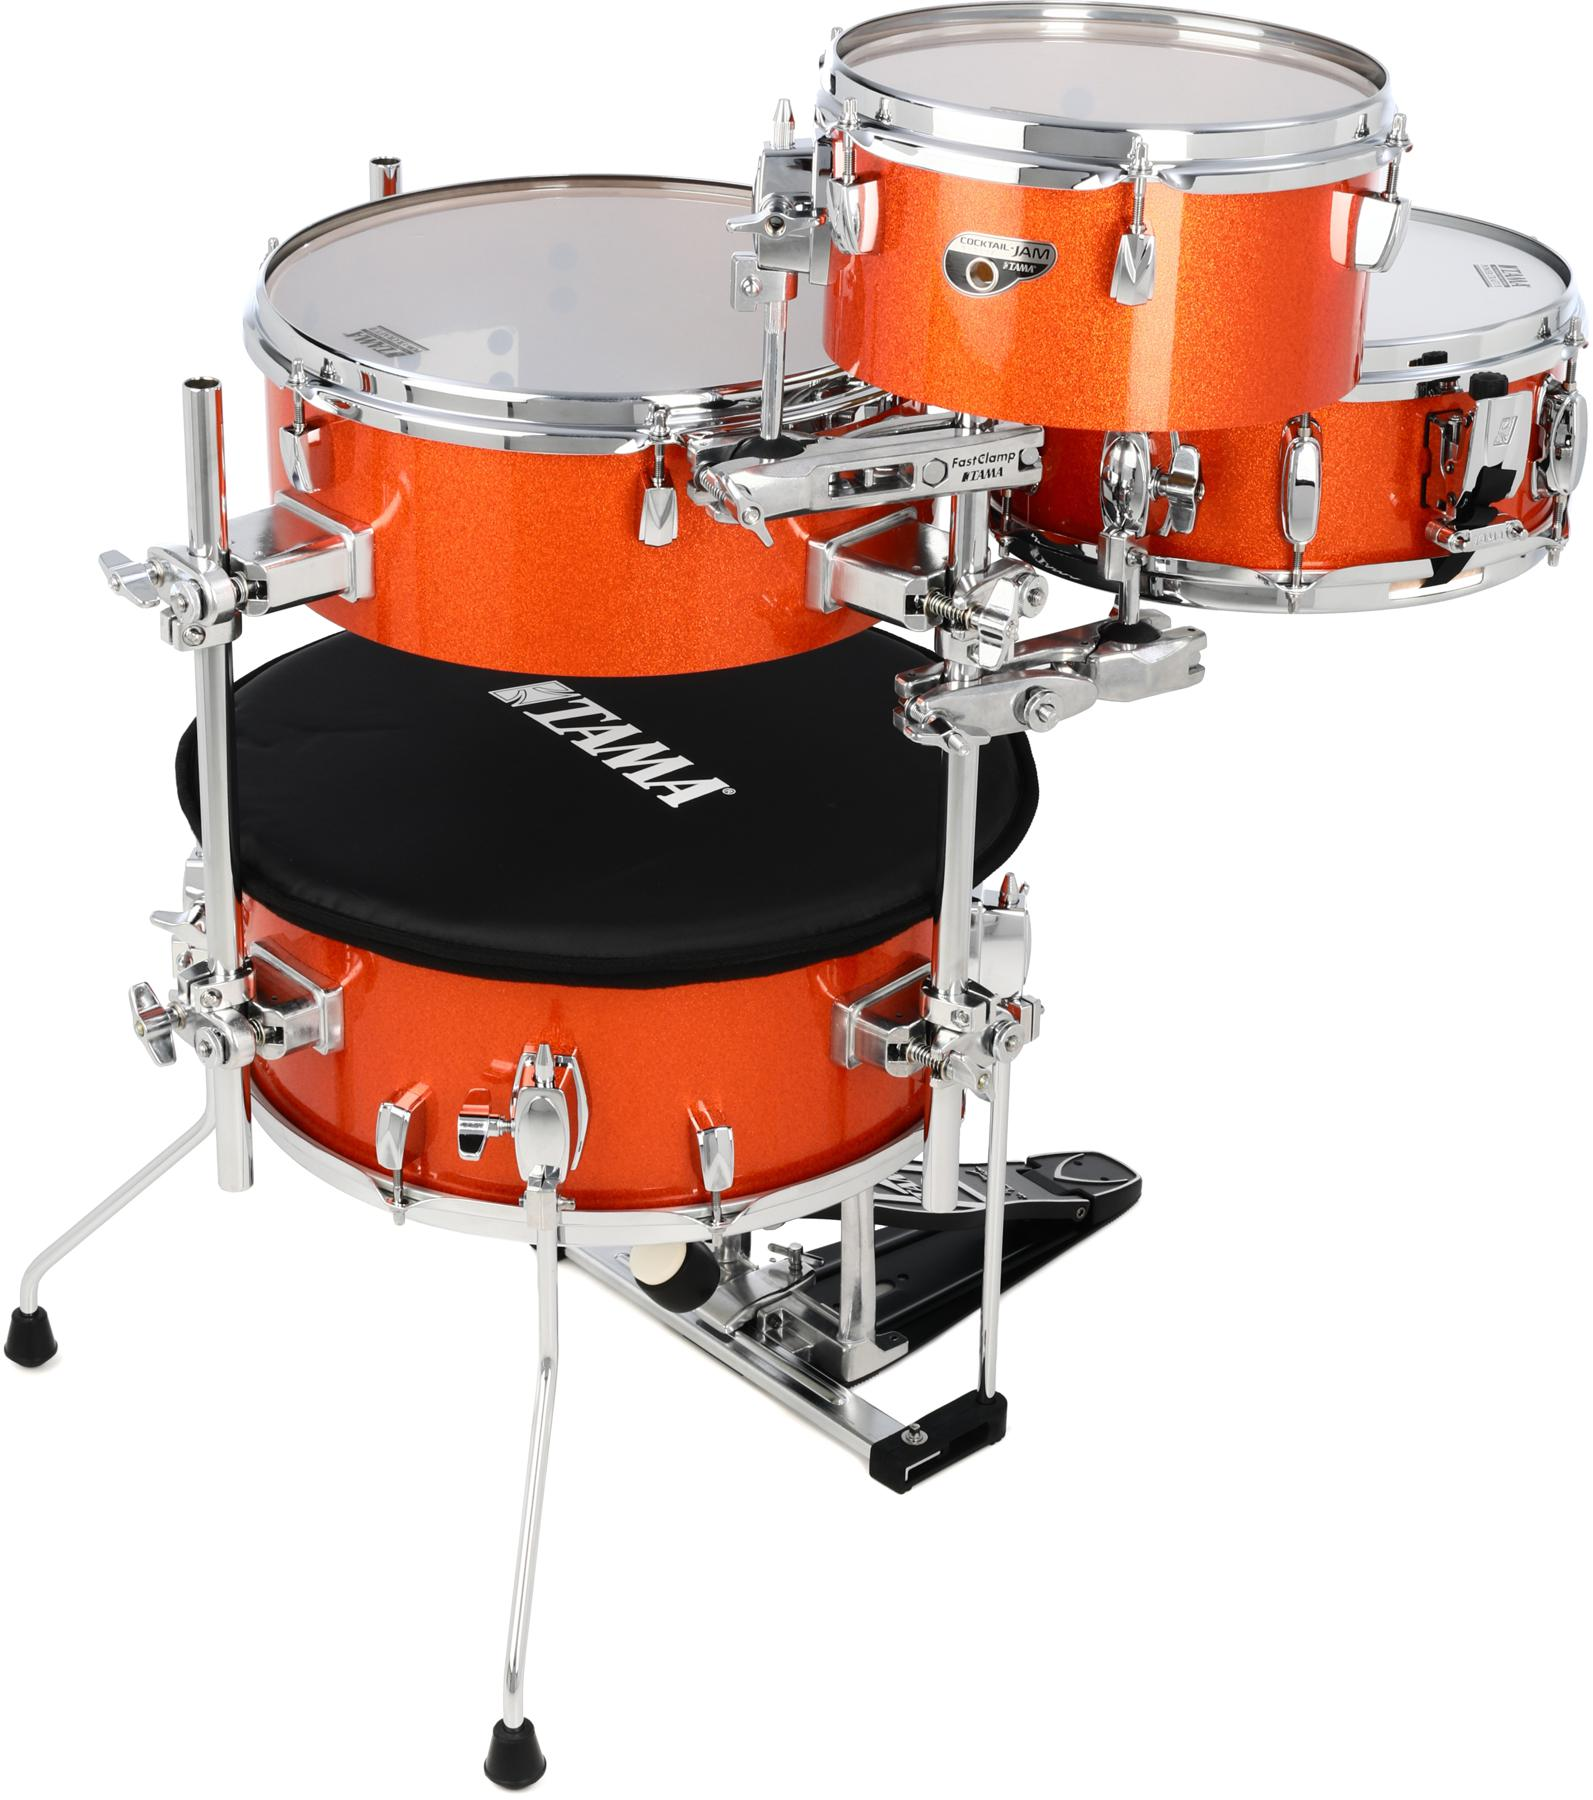 1. Tama Cocktail Jam 4-piece Shell Pack with Hardware